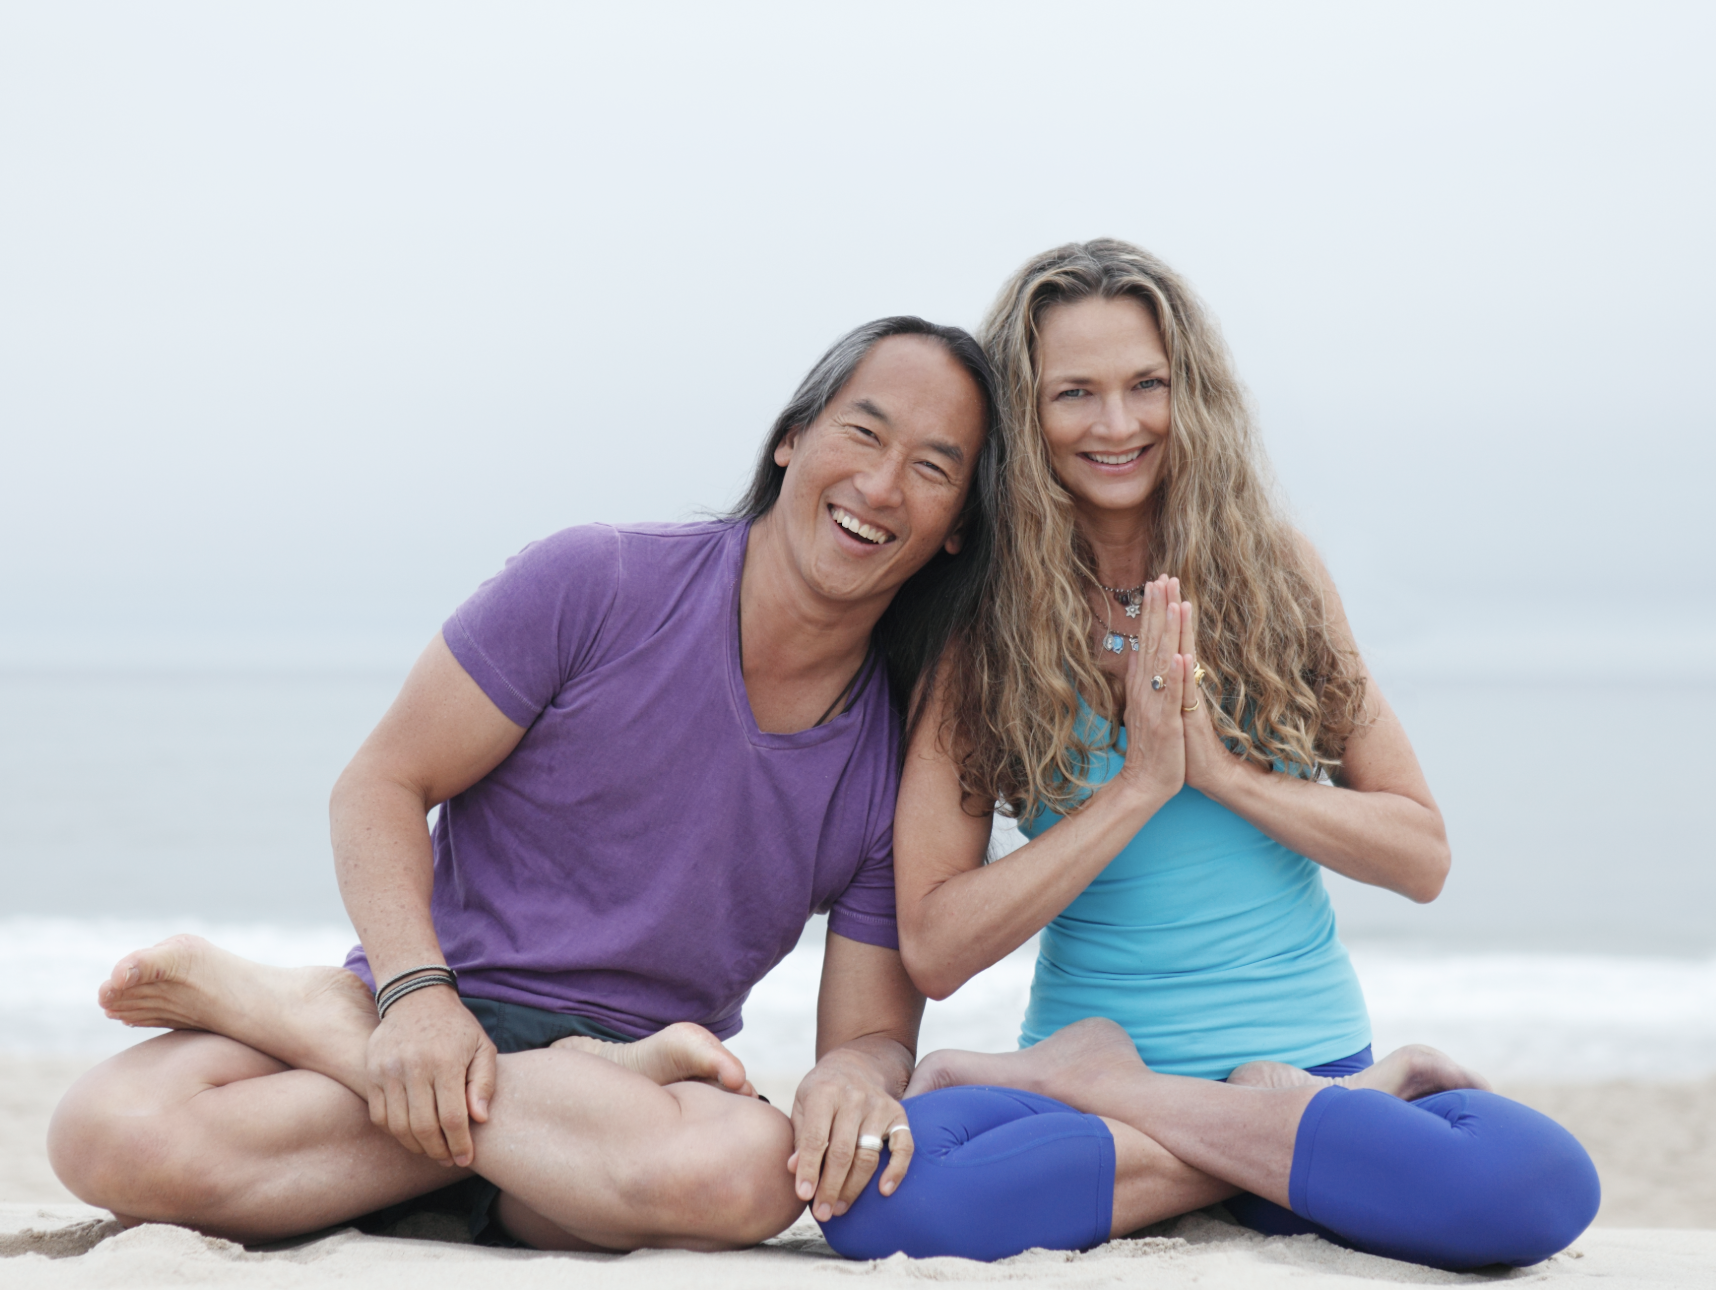 The Full Scope of Yoga (at Yoga Central in Ohio) -